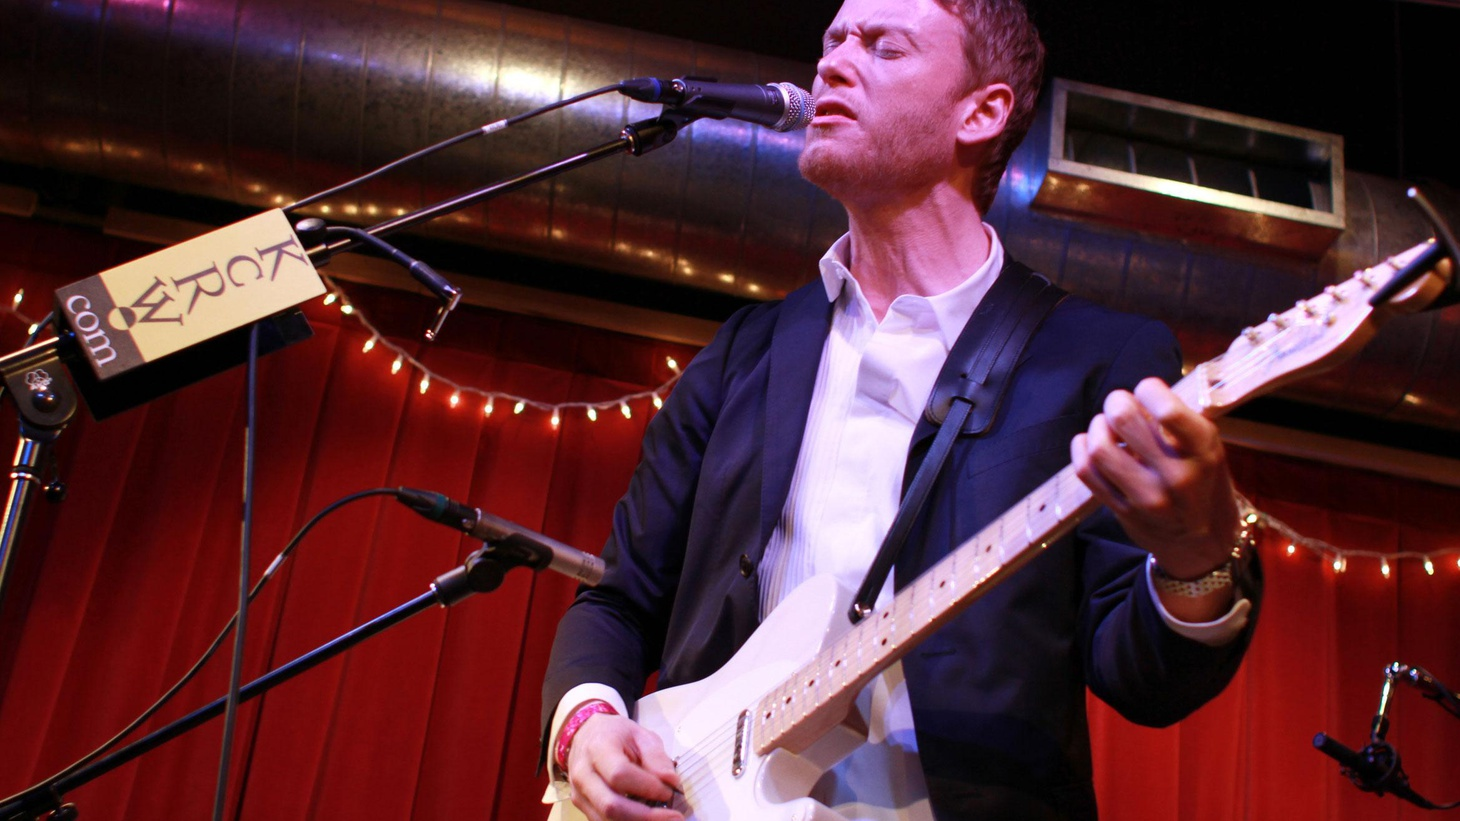 Teddy Thompson's musical pedigree gets your attention immediately, as the son of folk legends Richard and Linda Thompson, but it's his soaring voice that won our hearts at KCRW's Apogee Sessions.